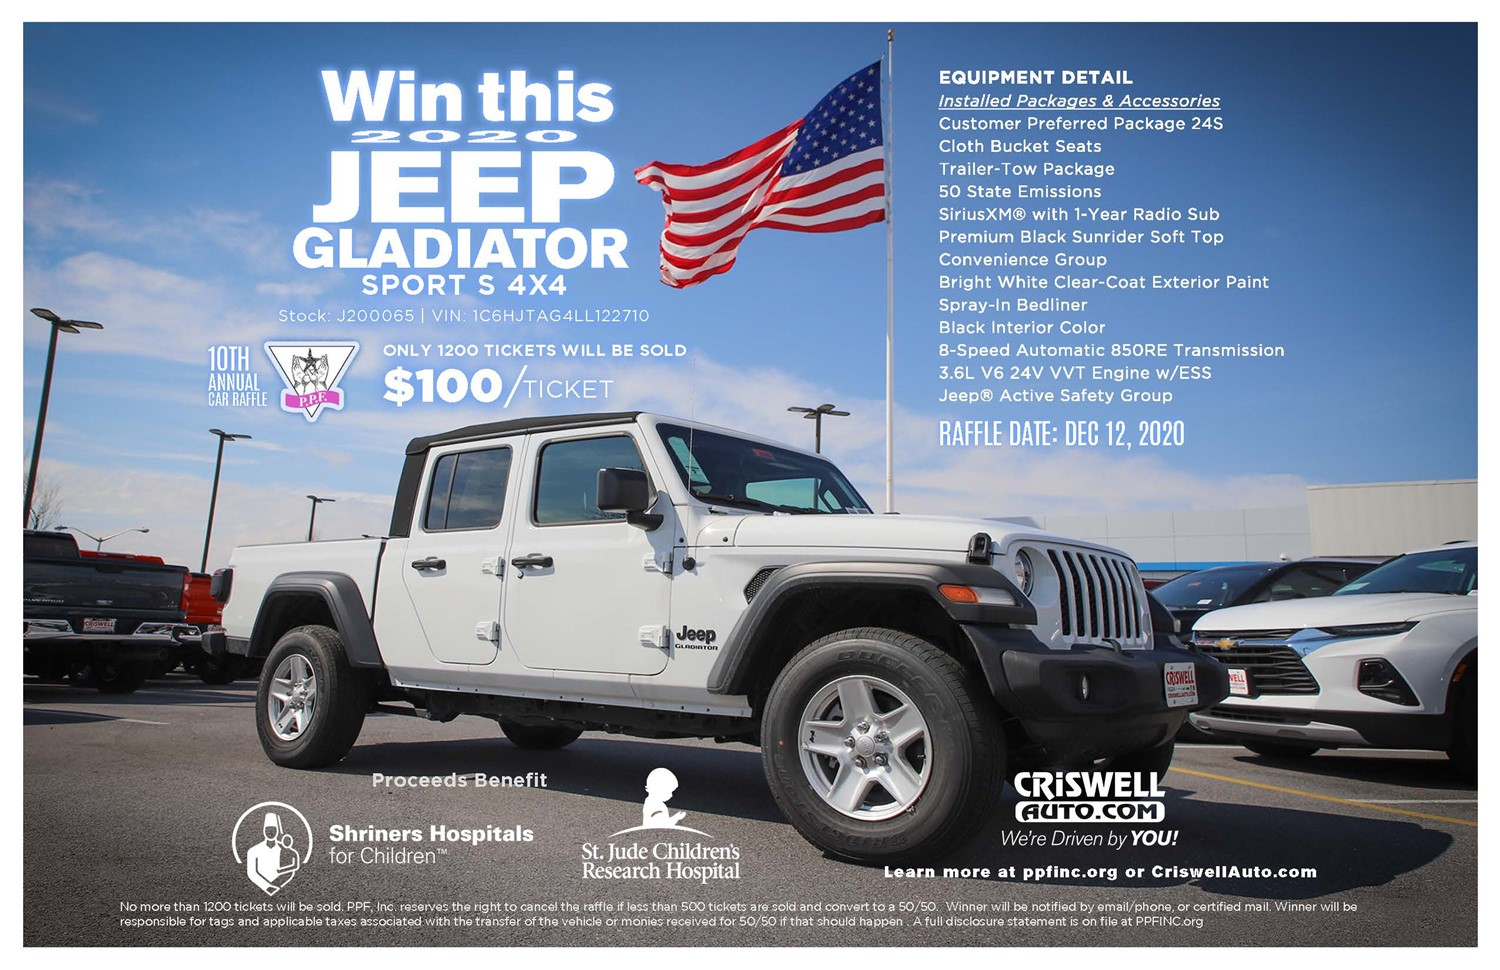 PPF, Inc 10th Annual CriswellAuto Jeep Gladiator Raffle Don't need to be present to WIN! on Sep 26, 14:00@Frederick Fairgrounds - Buy tickets and Get information on Patty Pollatos Fund